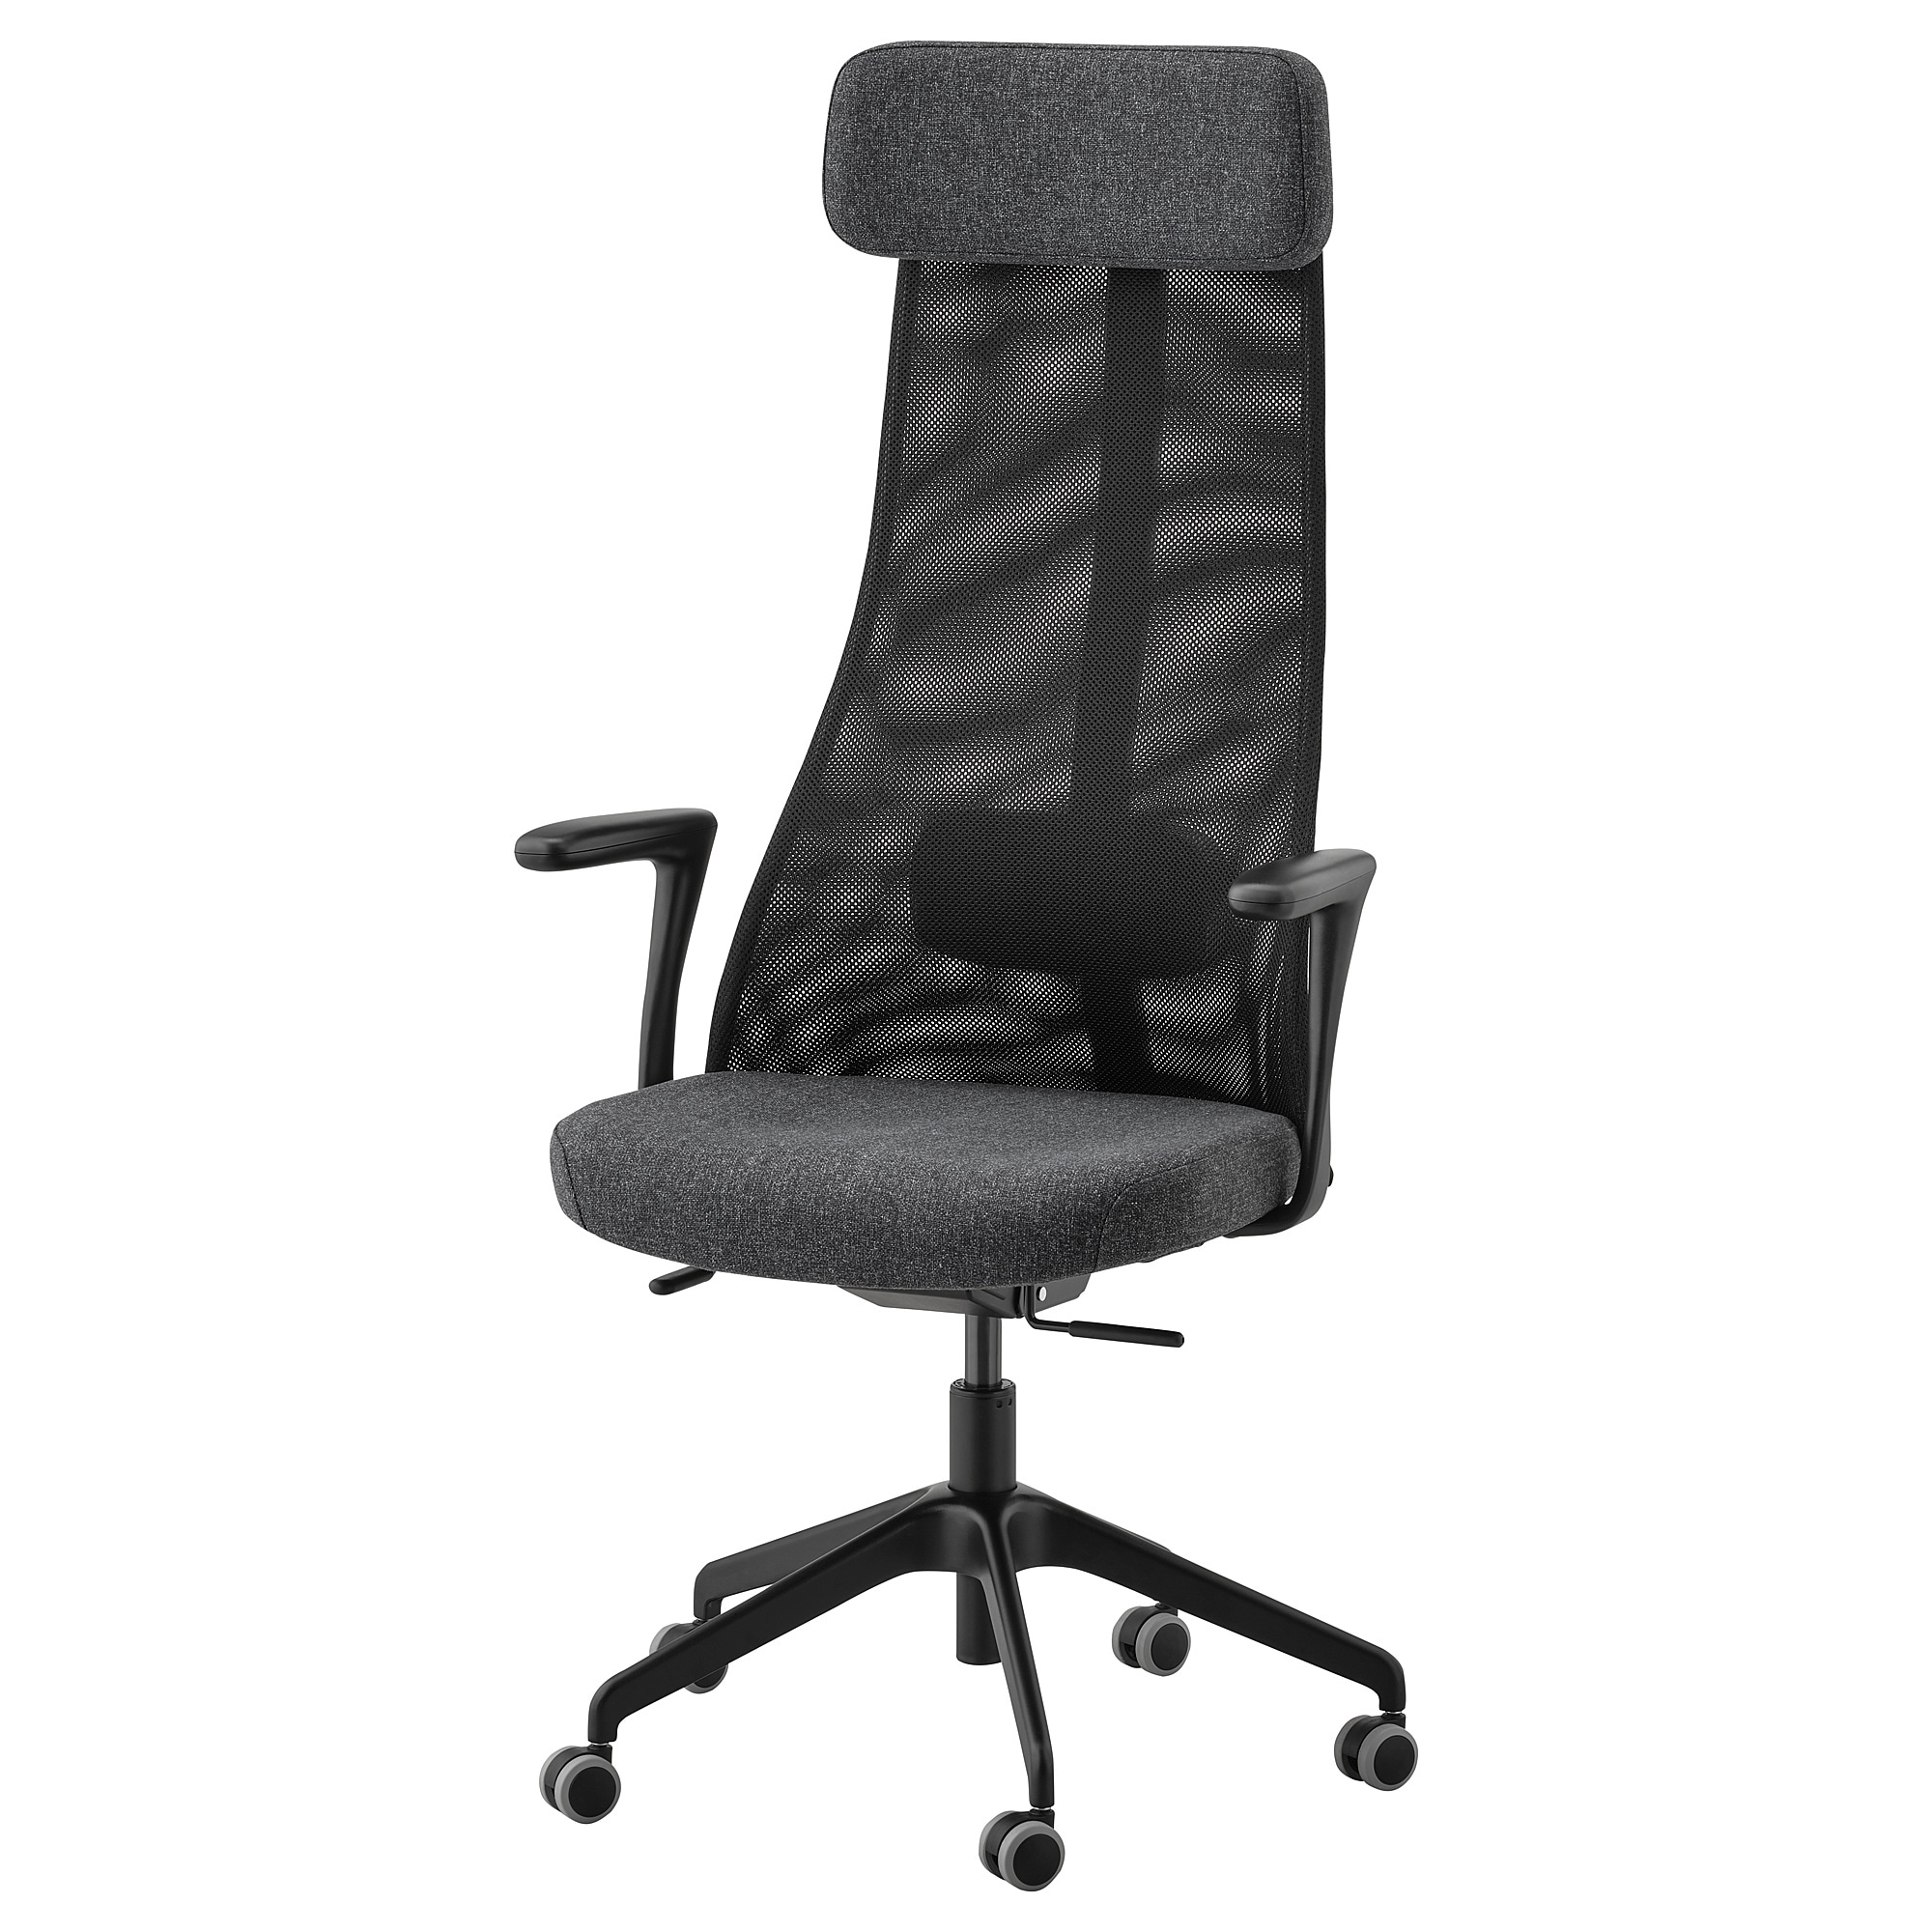 Office Chair With Armrests JÄrvfjÄllet Gunnared Dark Grey Black